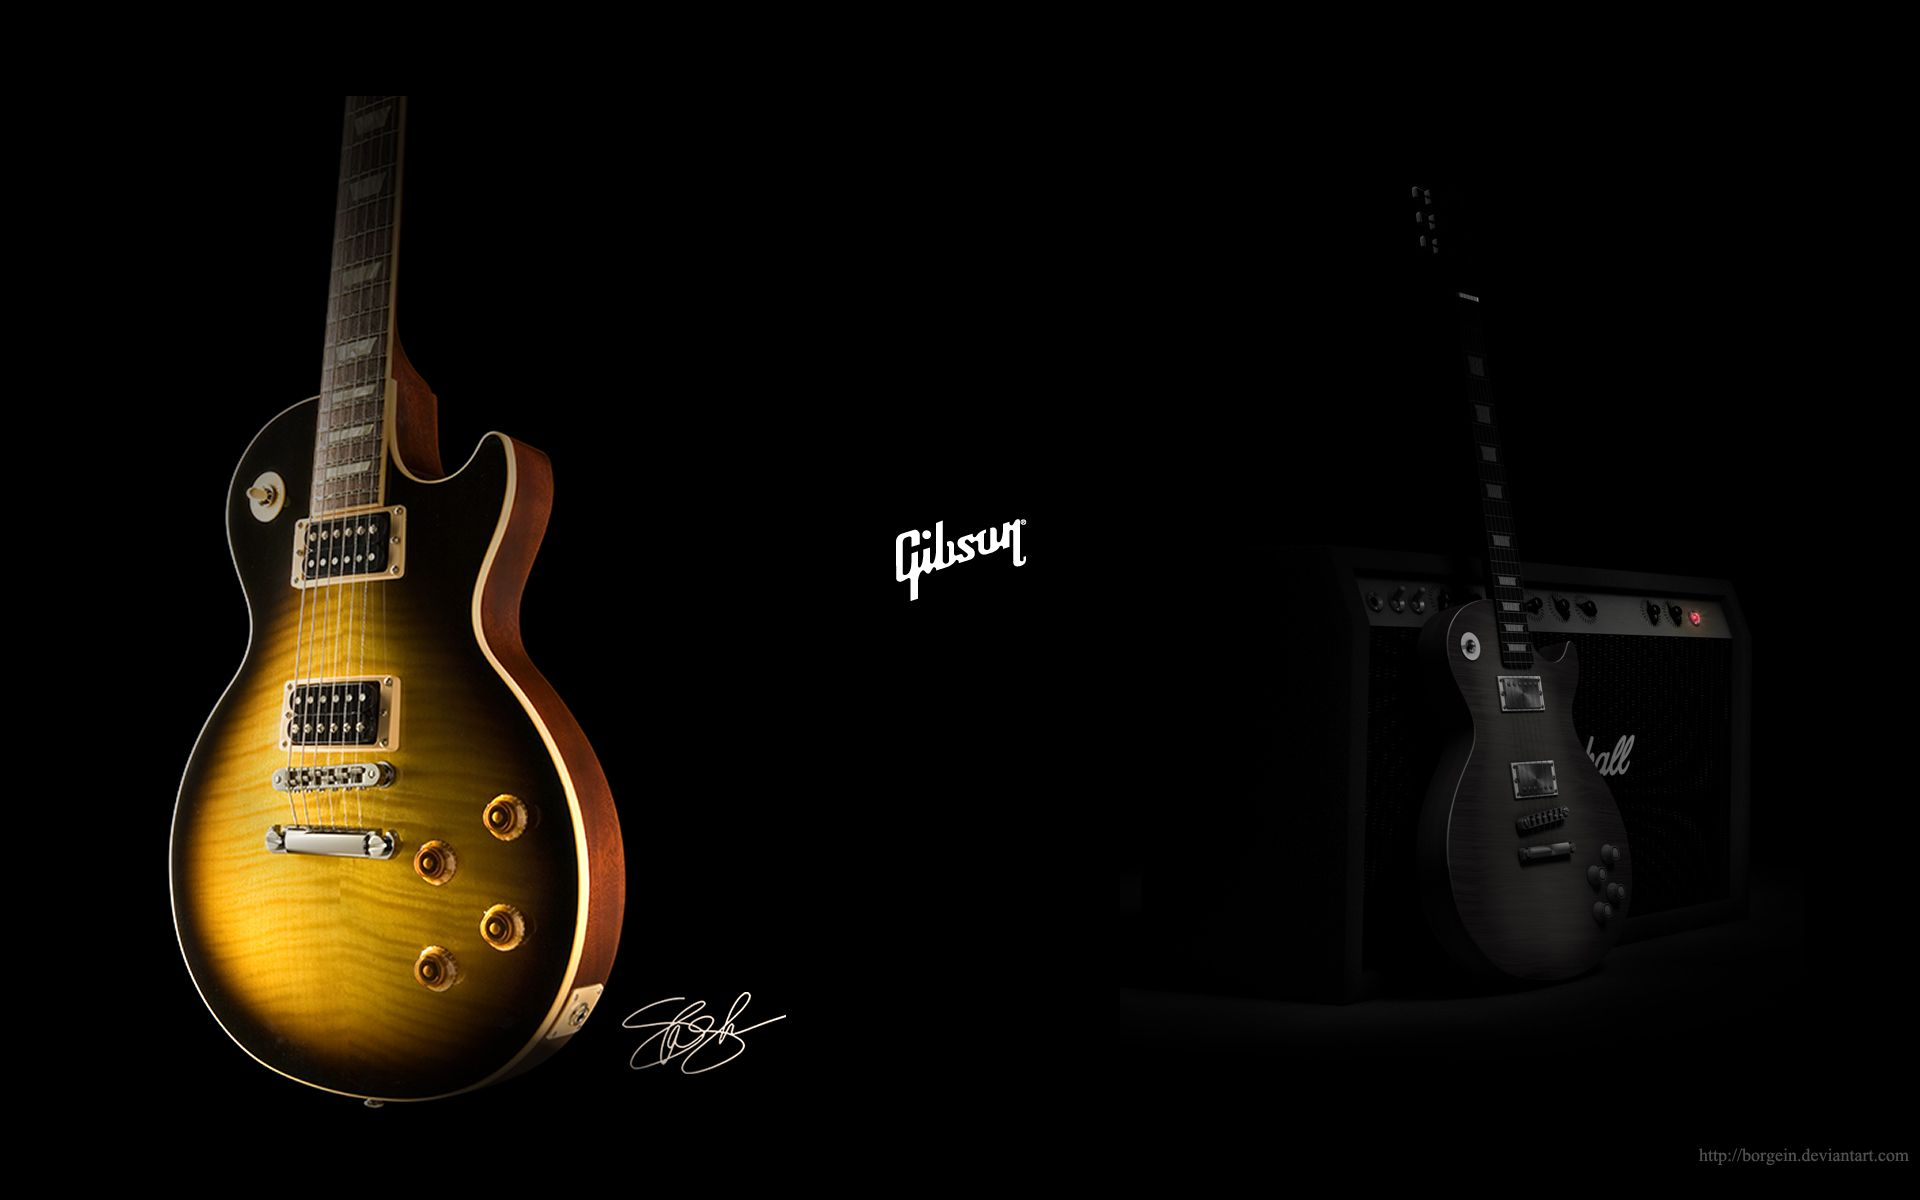 Les Paul...sigh..when will i have the good fortune to own one of these beauties..